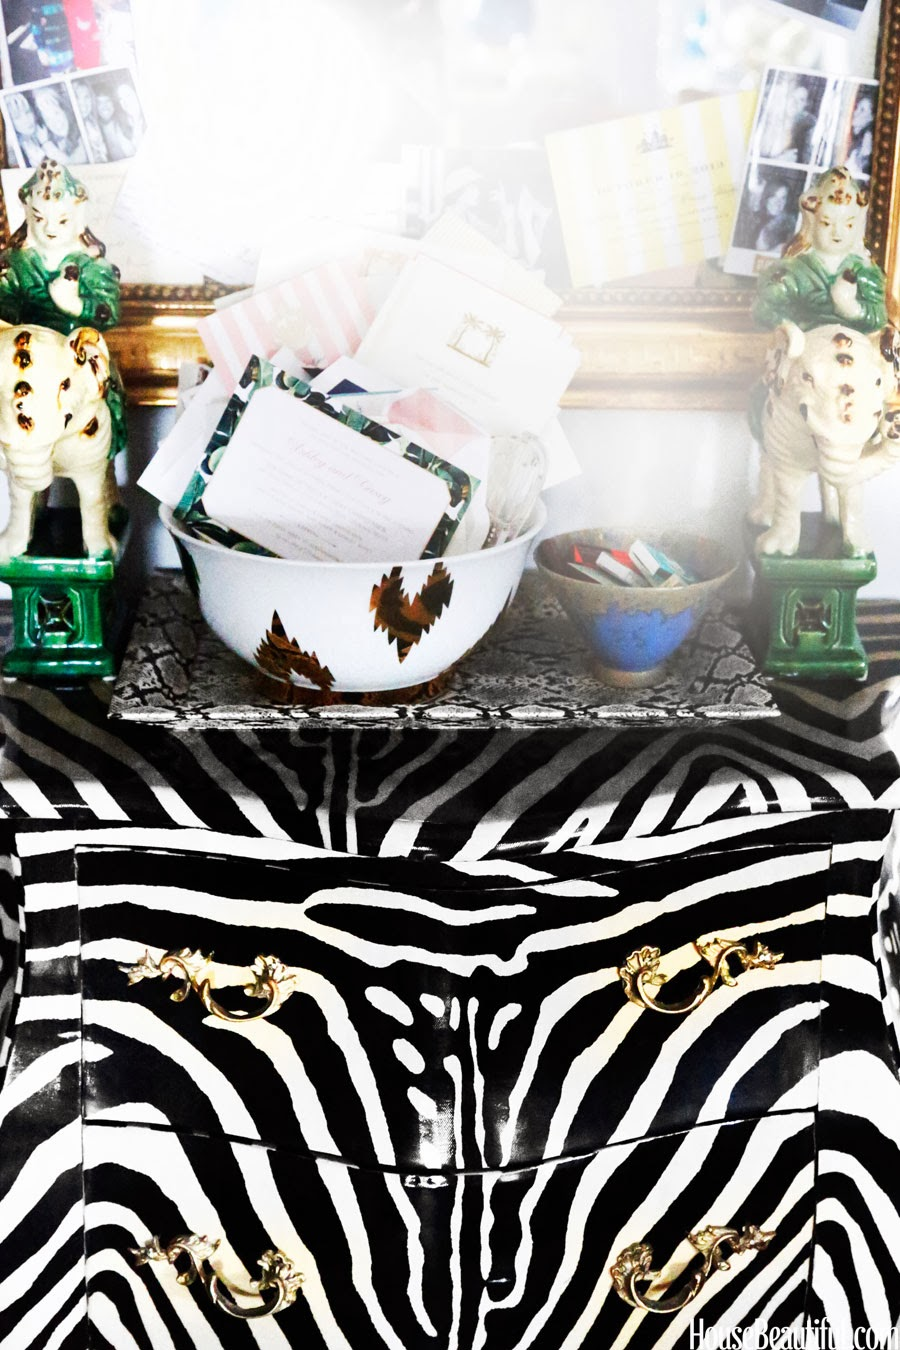 LCH+Zebra+Chest.jpg